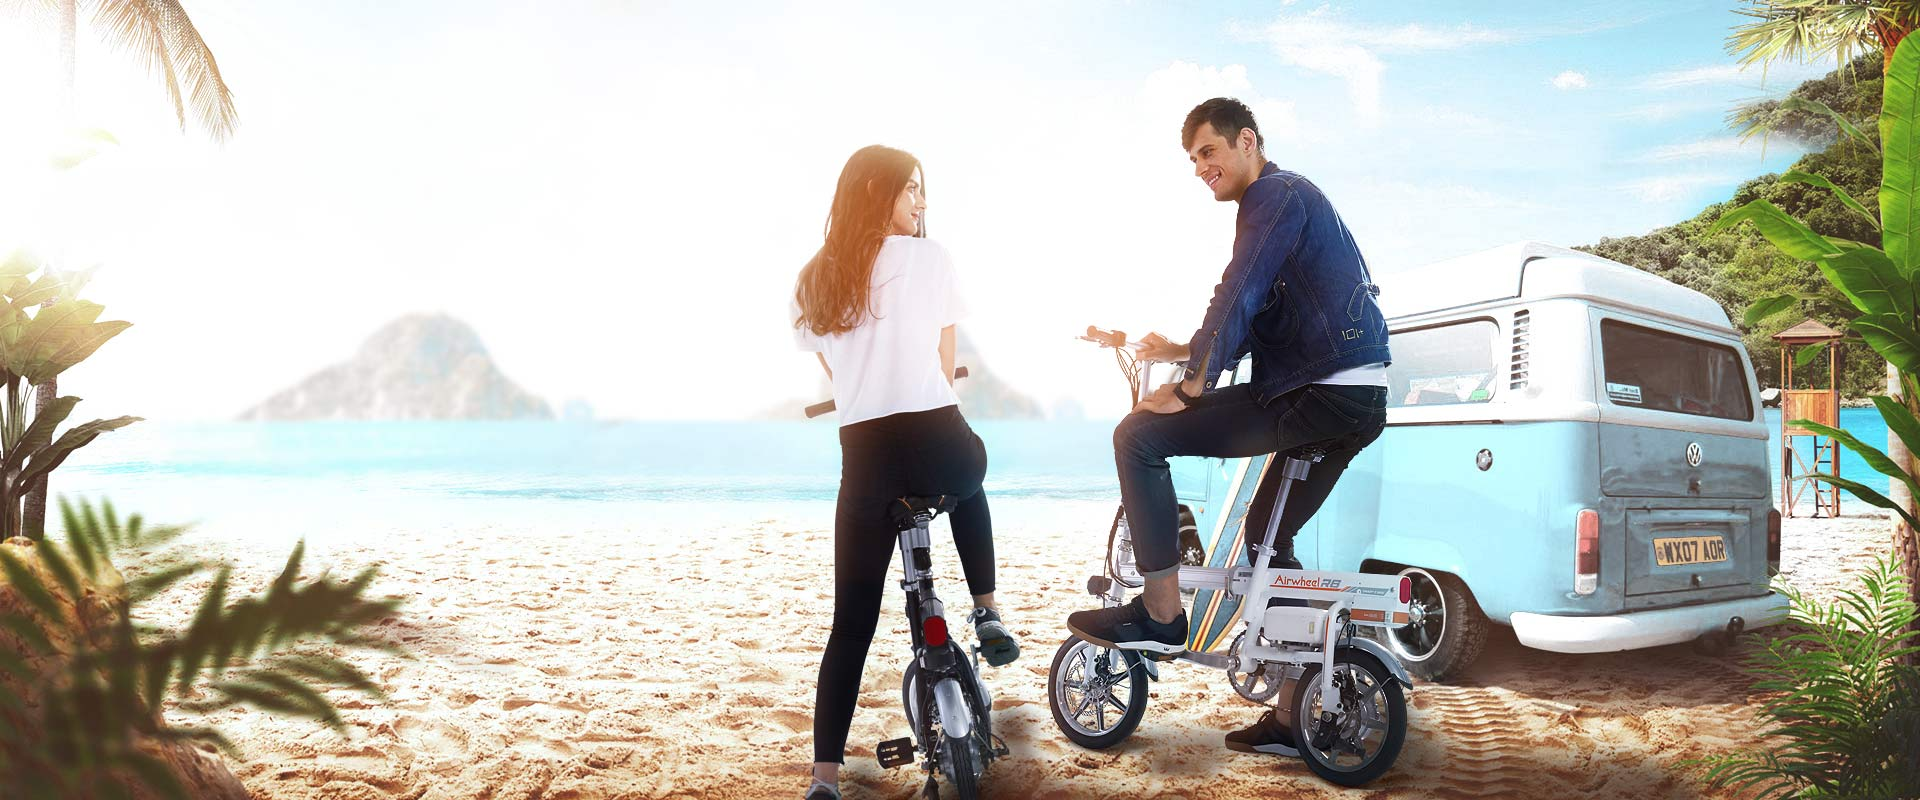 Airwheel pedal assist electric bike